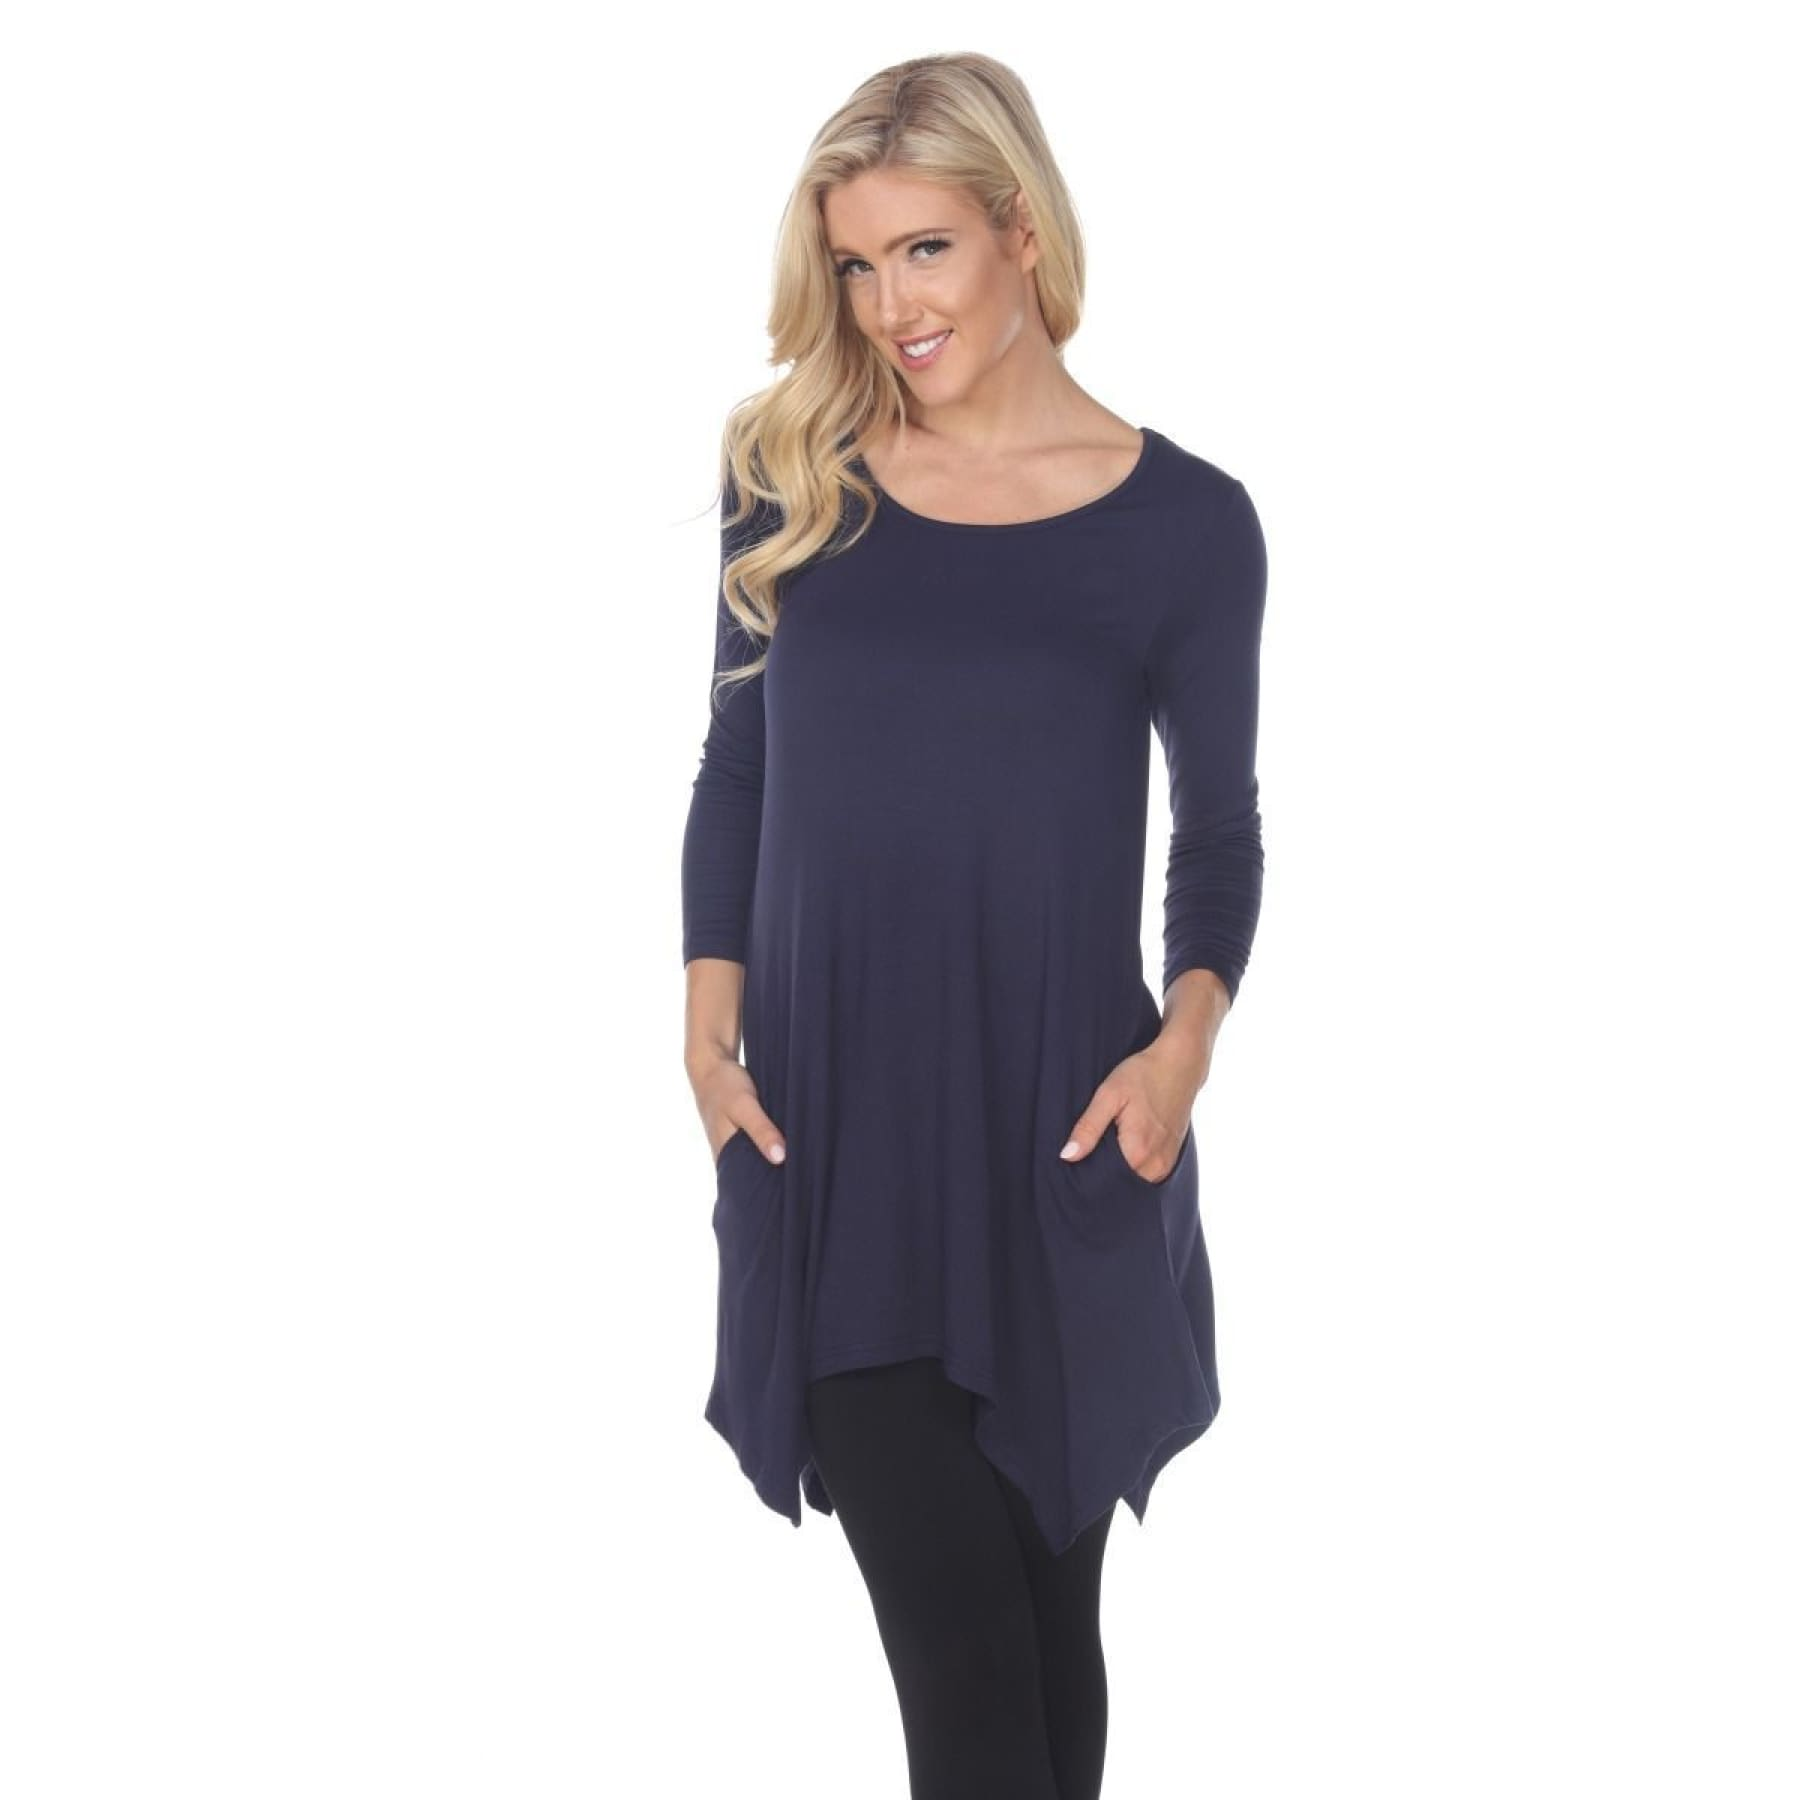 Side Pocket 3/4 Sleeve Solid Tunic Top ~4 colors - S / Navy - Top